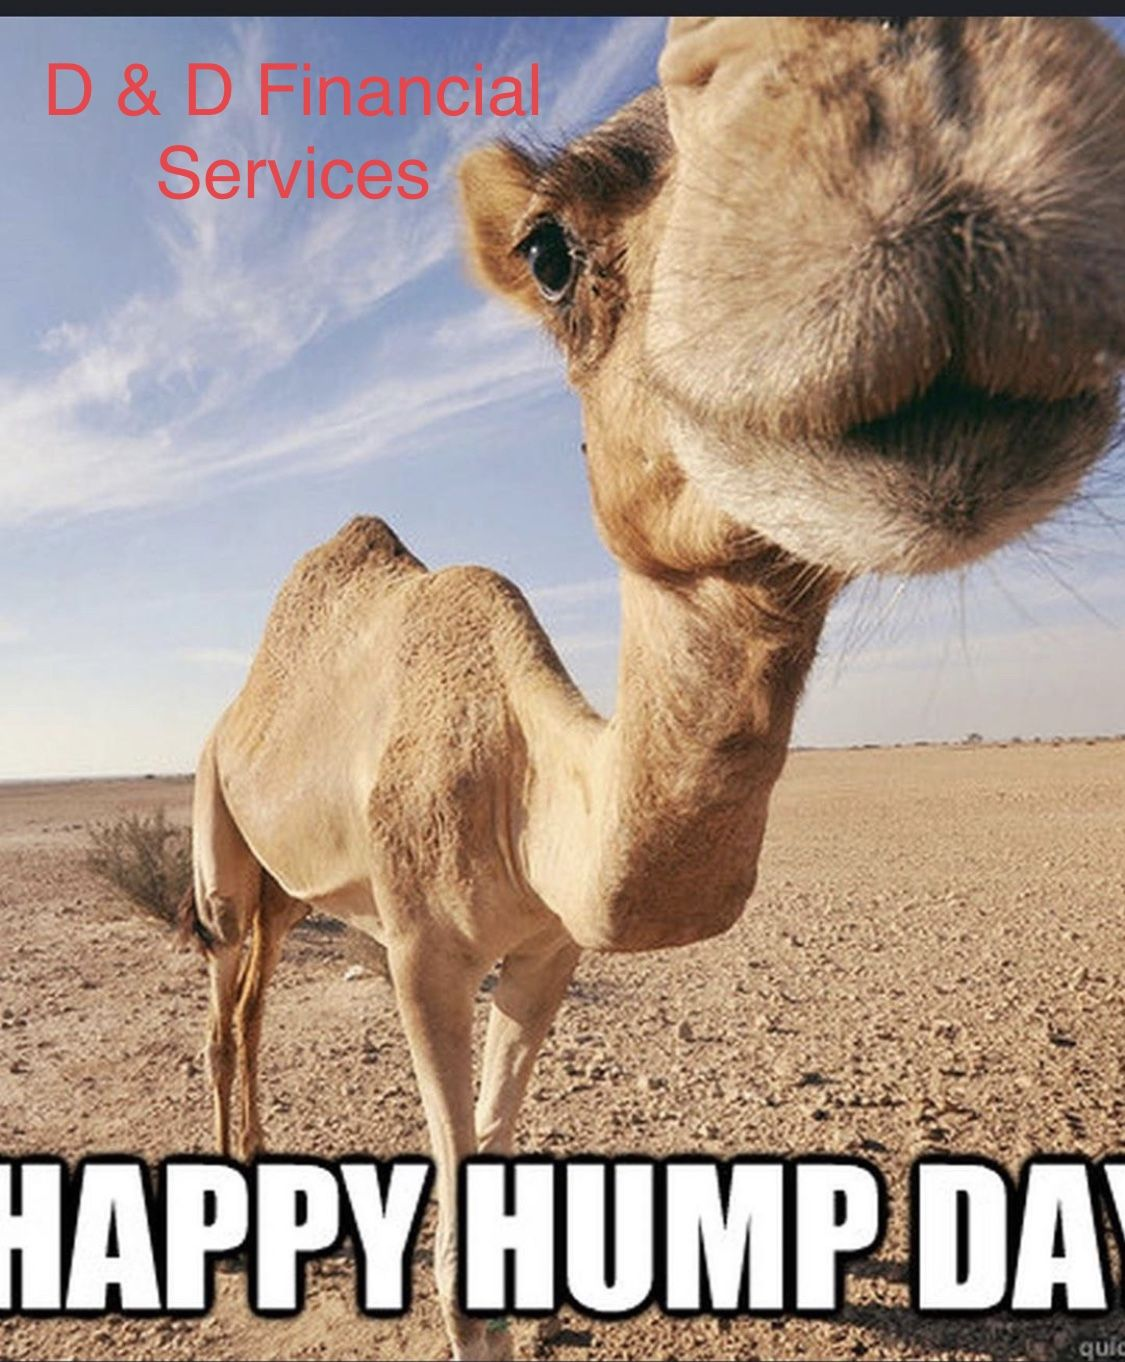 Happy Hump Day Funny Hump Day Memes Hump Day Quotes Hump Day Humor